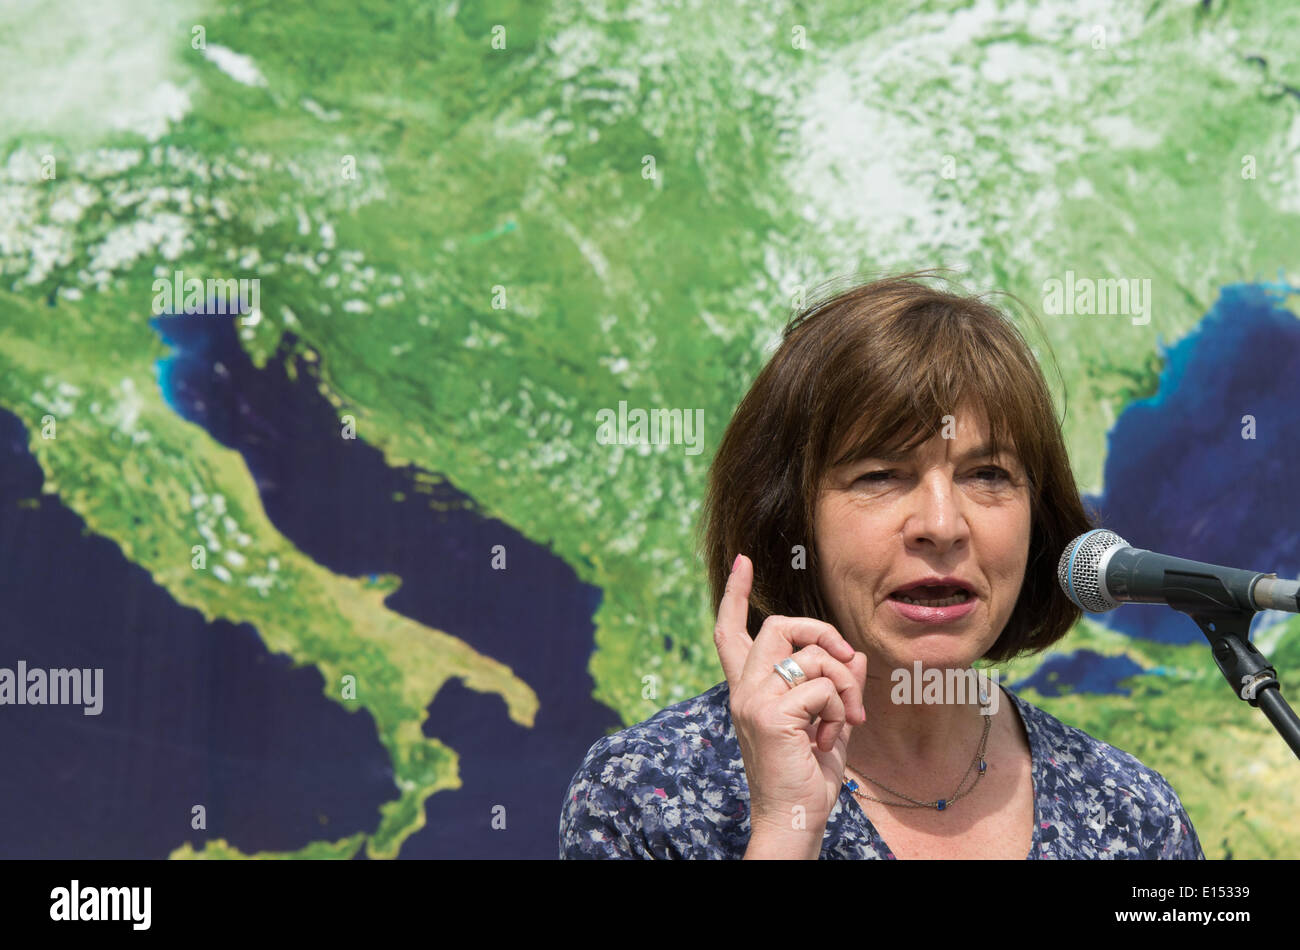 Hanover, Germany. 22nd May, 2014. Top candidate for Alliance 90/The Greens, Rebecca Harms, stands in Hanover, Germany, 22 May 2014. Harms ended the campaign in Hanover. Photo: JOCHEN LUEBKE/dpa/Alamy Live News - Stock Image